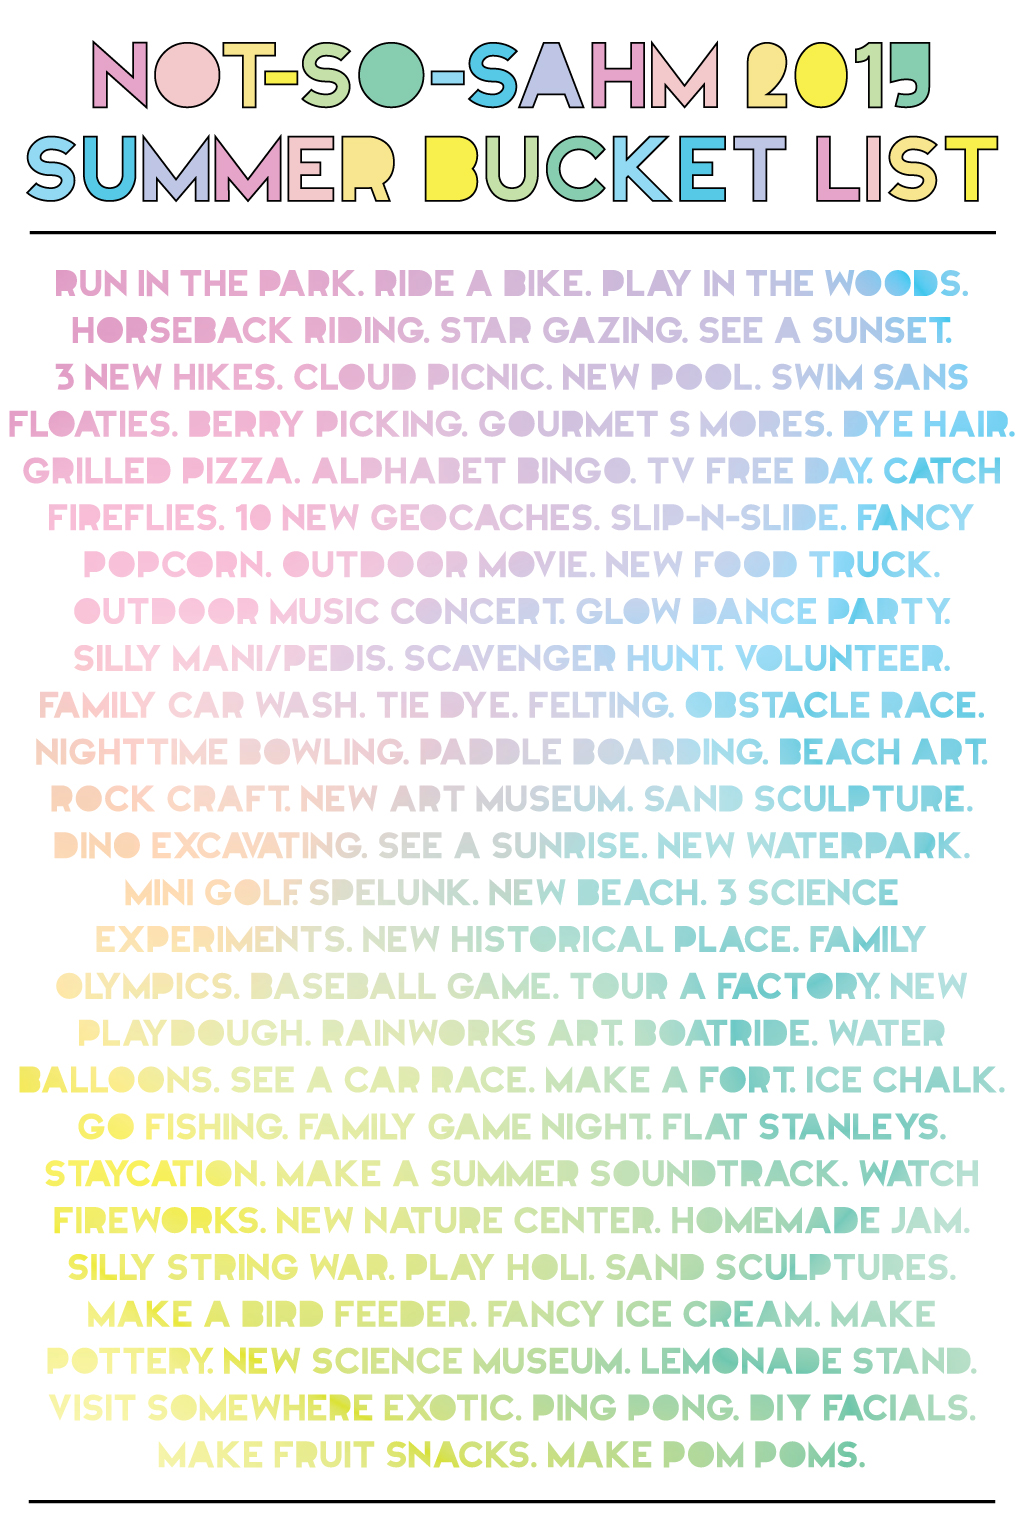 2015 Summer Bucket List!!